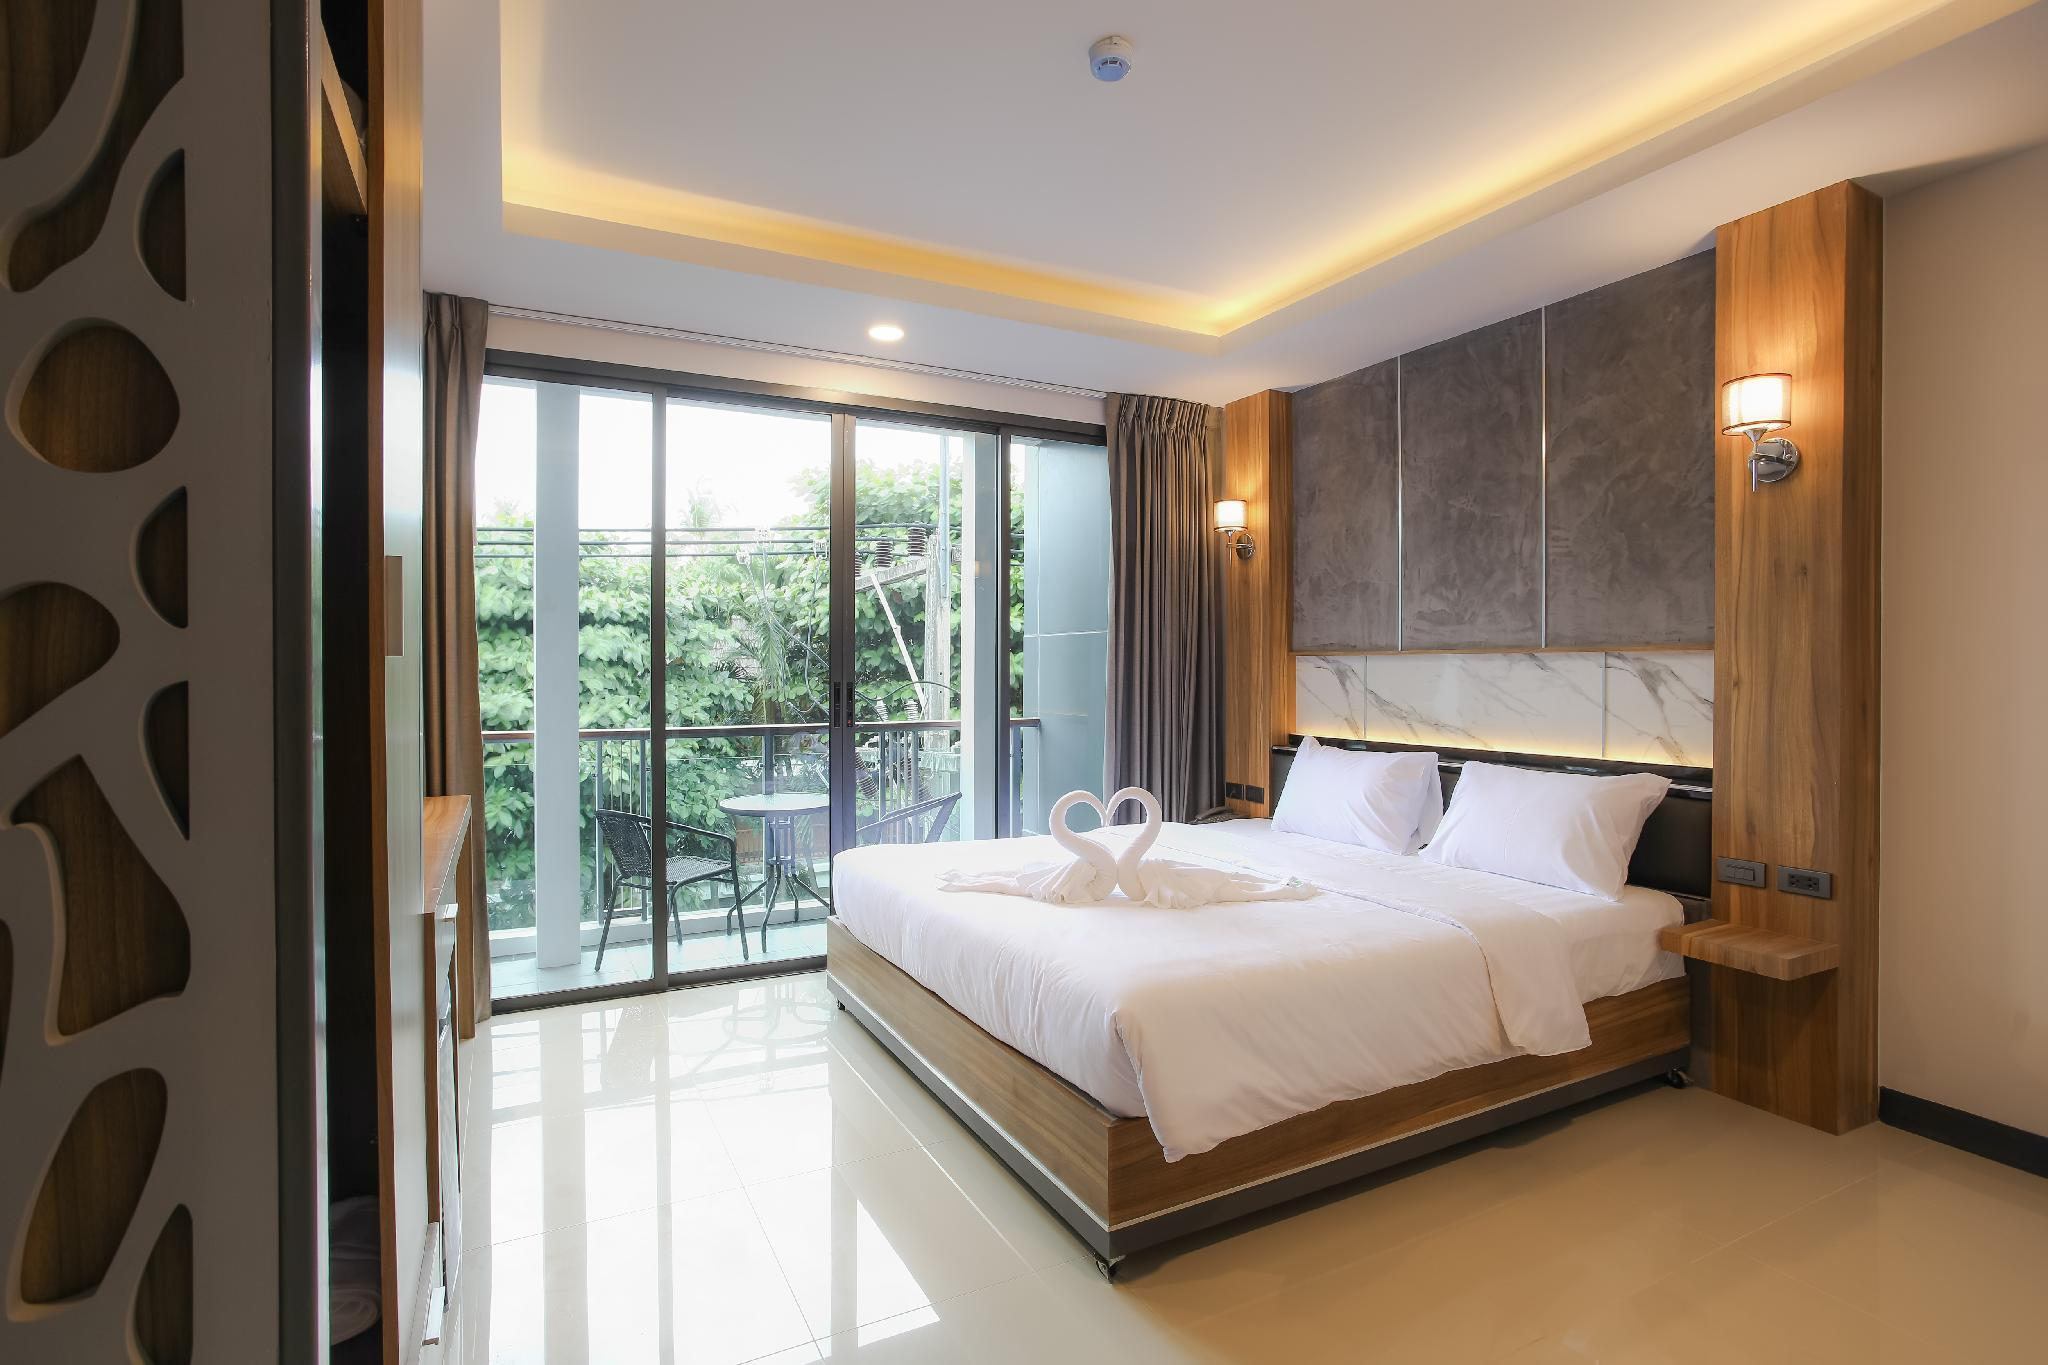 THE MANTRA HOTEL